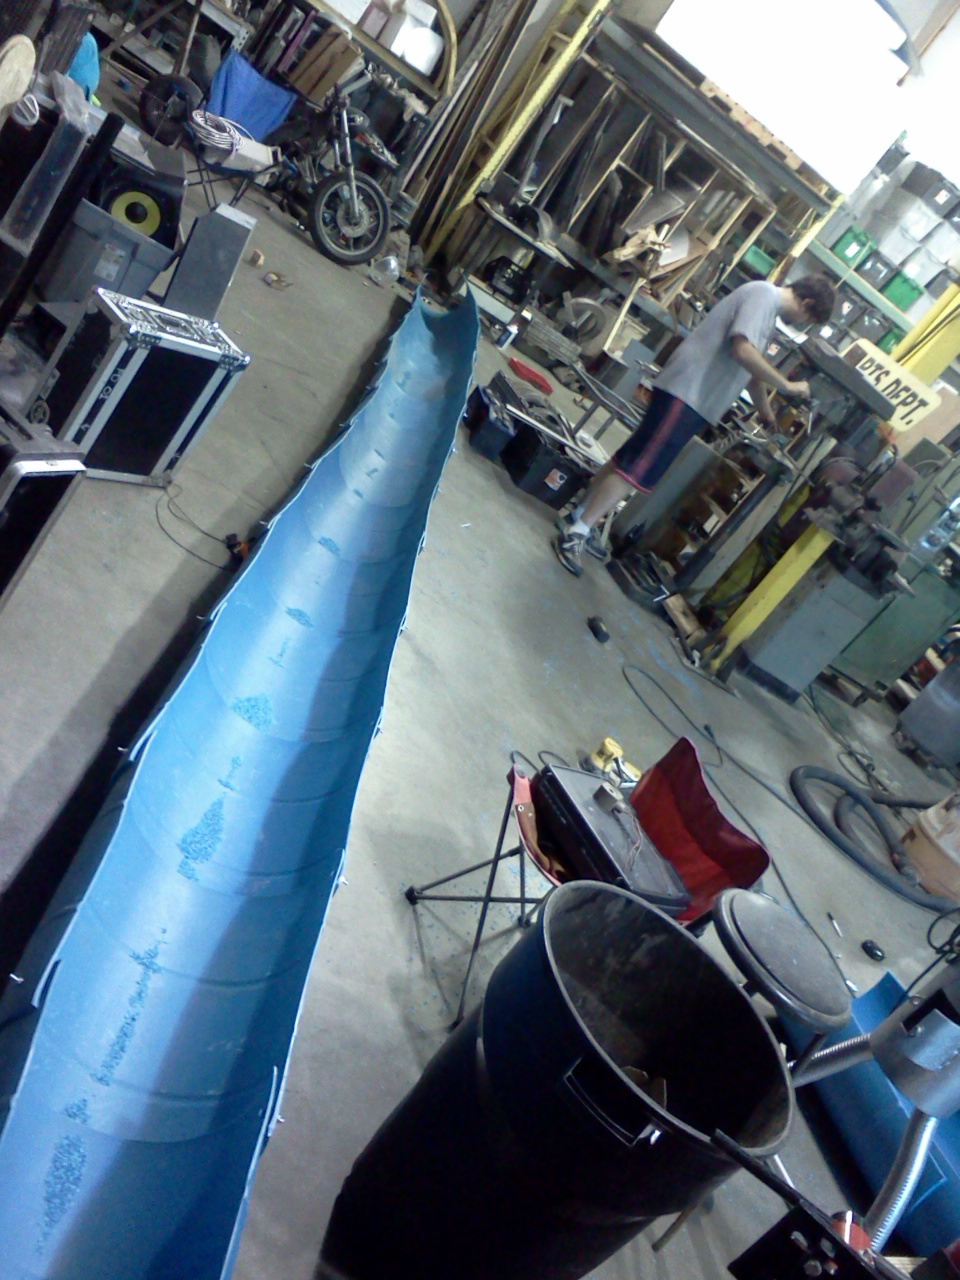 Slide chute in the shop